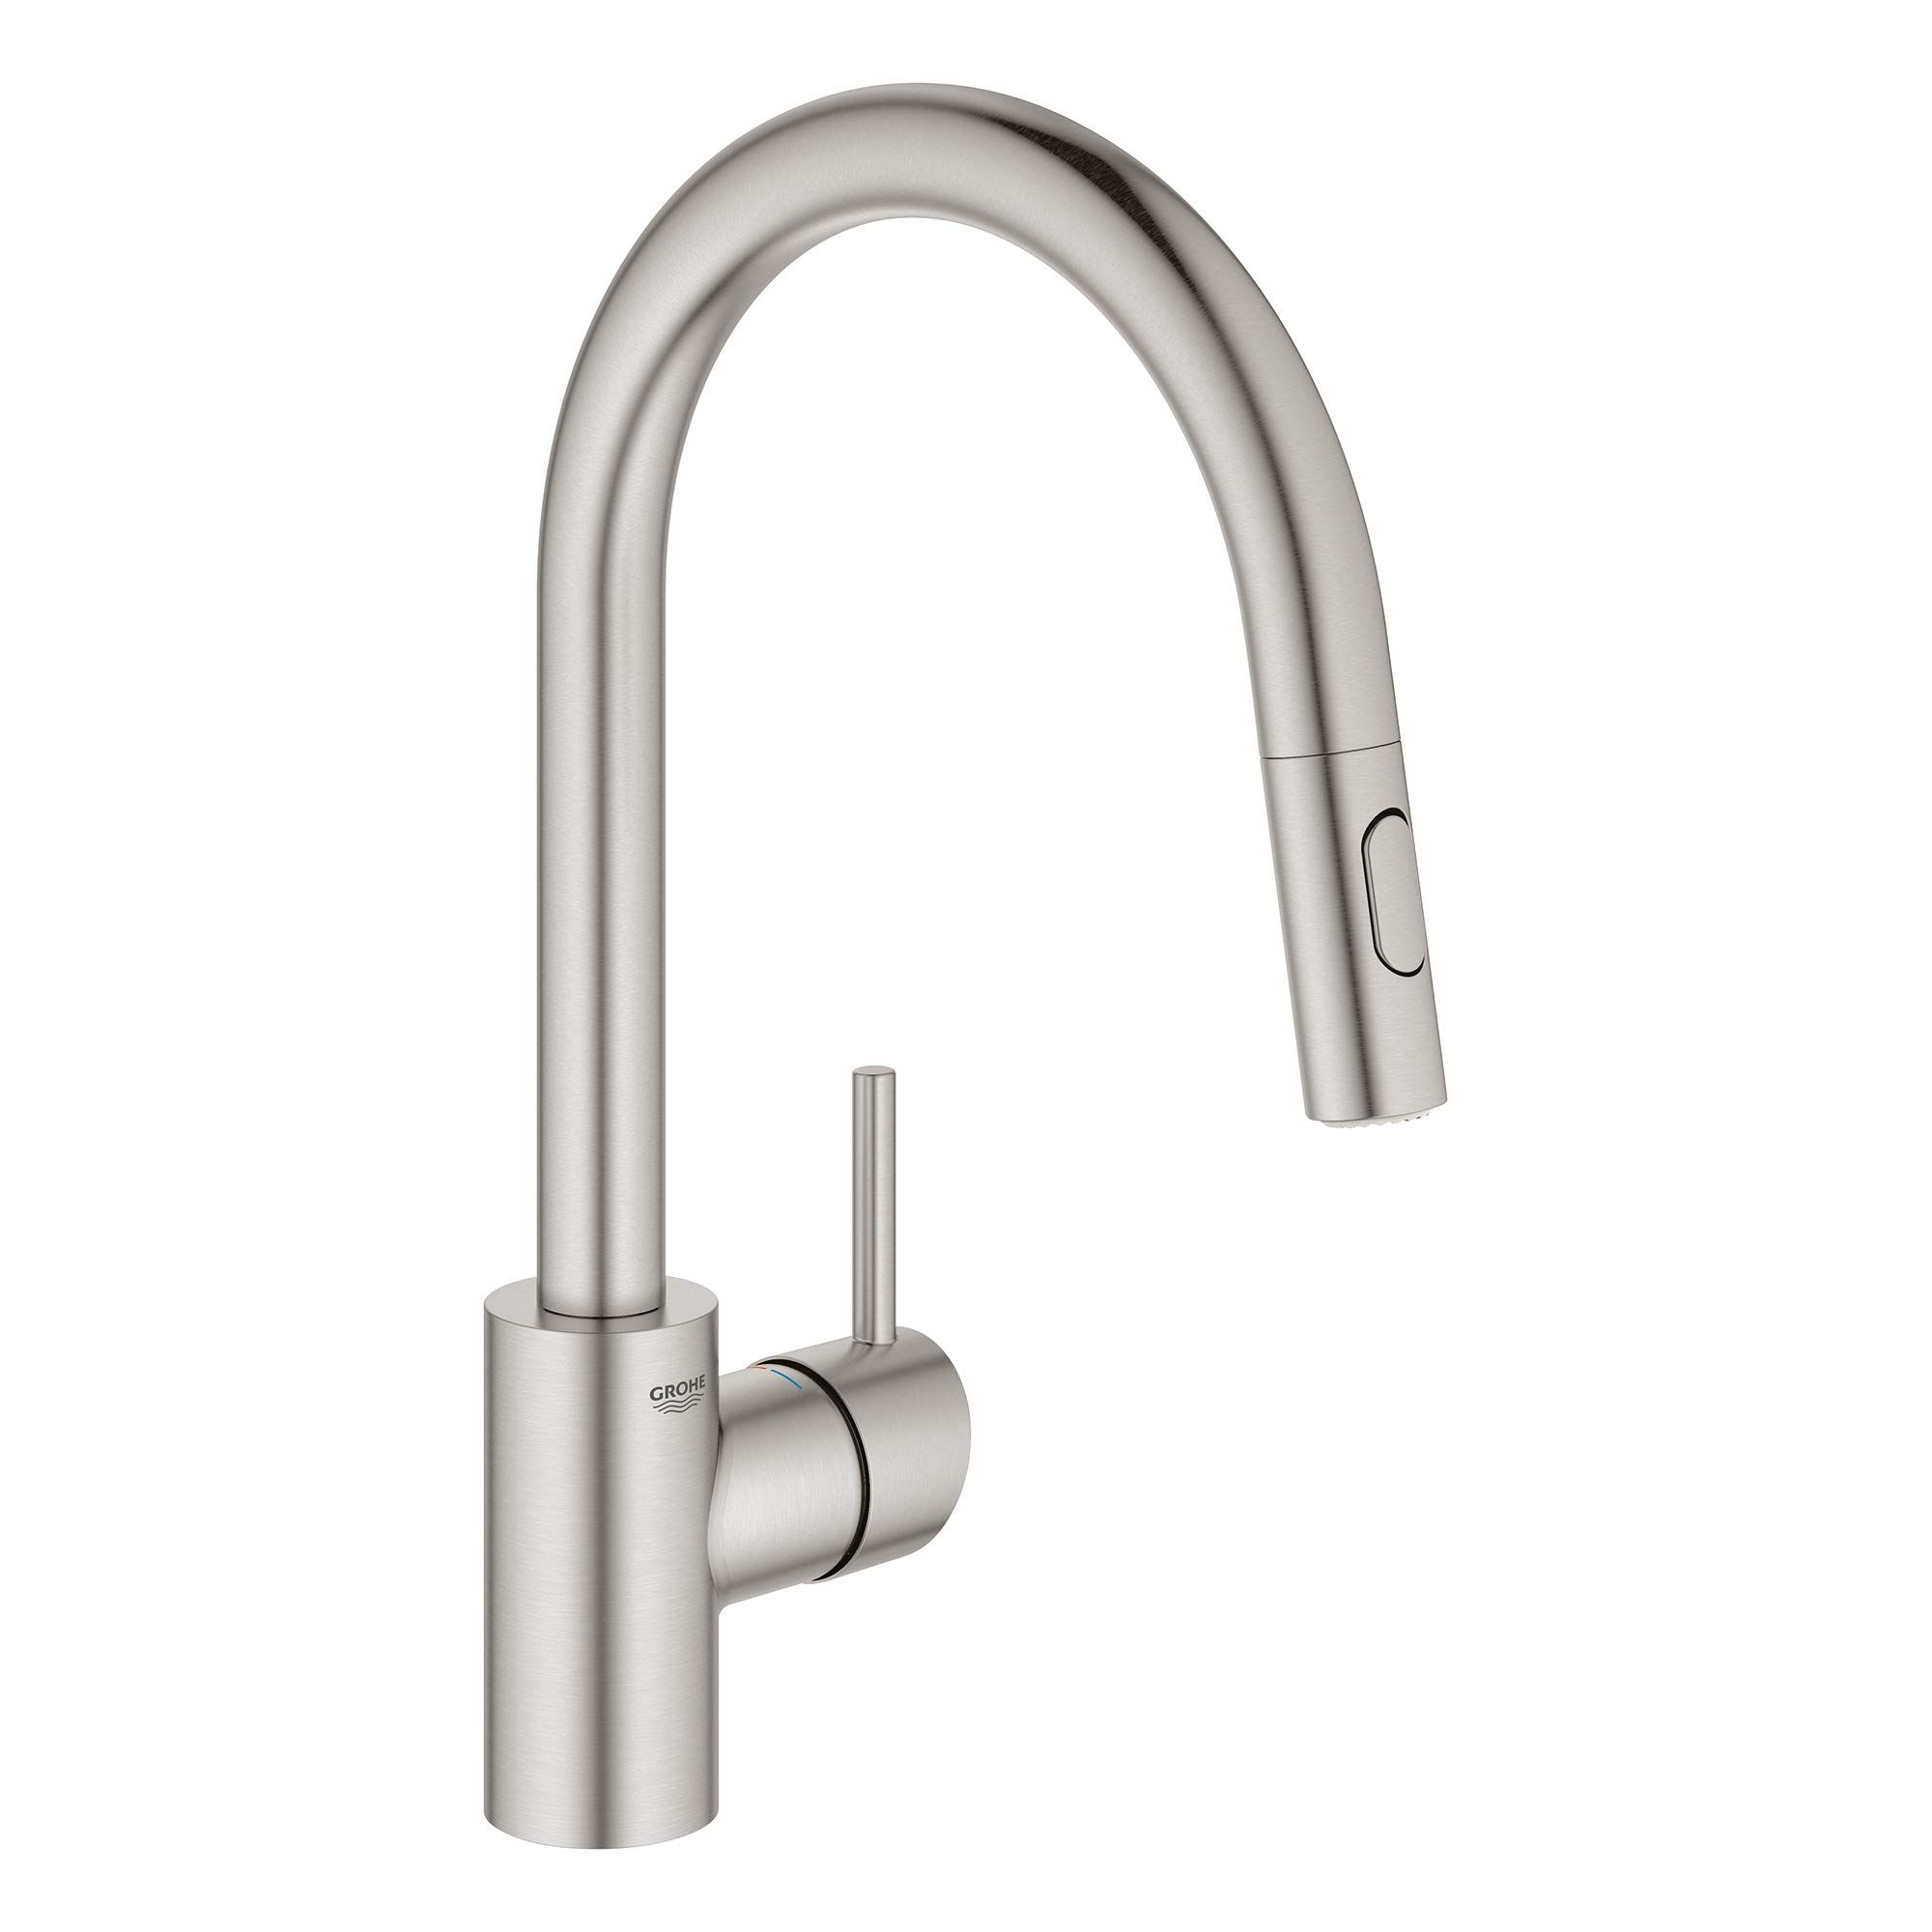 Grohe 32665dc3 Concetto Dual Spray Pull Down Kitchen Faucet